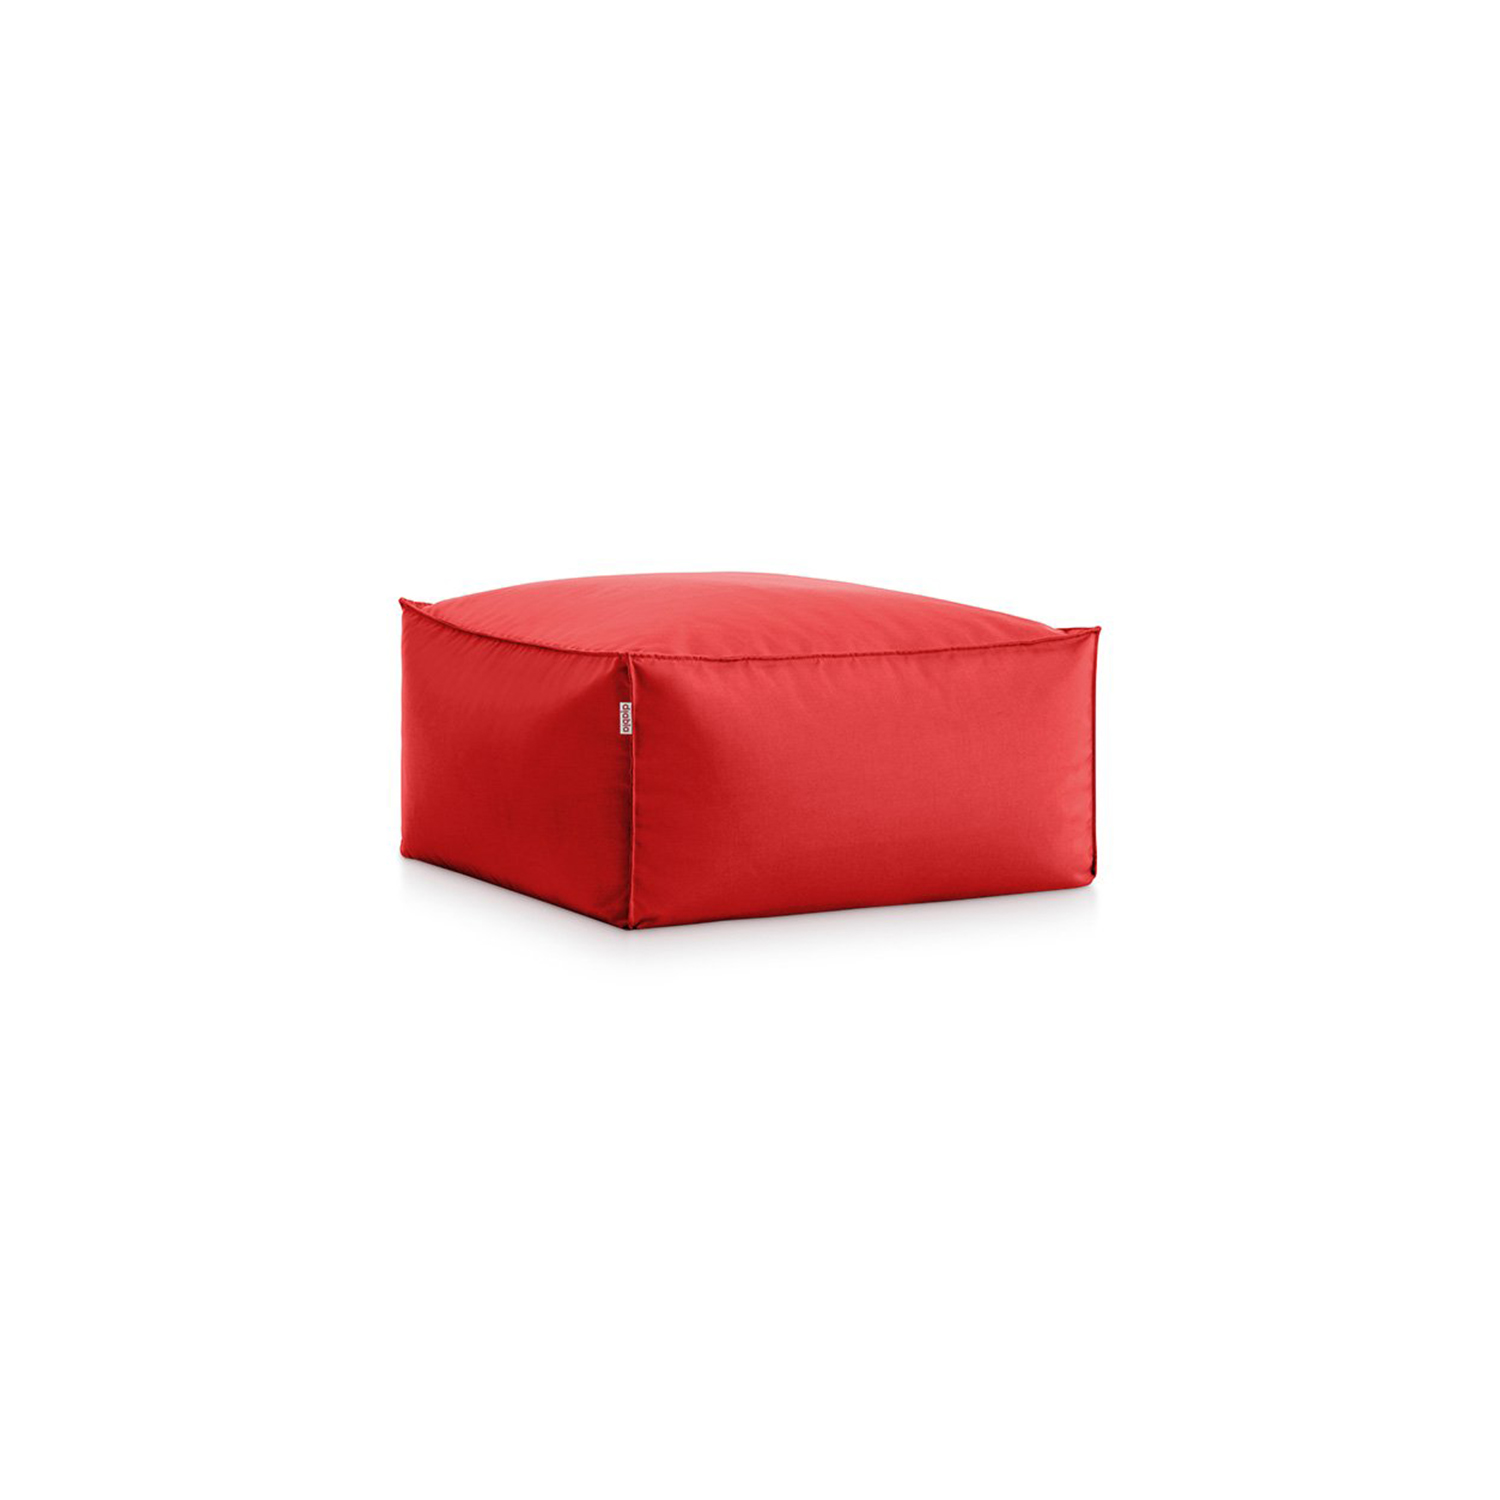 Sail Square Pouf - This is the pouf in our Sail collection, a set of furniture consisting of two designs for a laid-back atmosphere that can be used together or separately. This outdoor pouffe can be used on its own as a seat, but also as a footrest or even as a side table for the Sail armchair. Two incredibly comfortable, soft seats because they're filled with polystyrene beads that move around and intuitively adapt to the human figure.